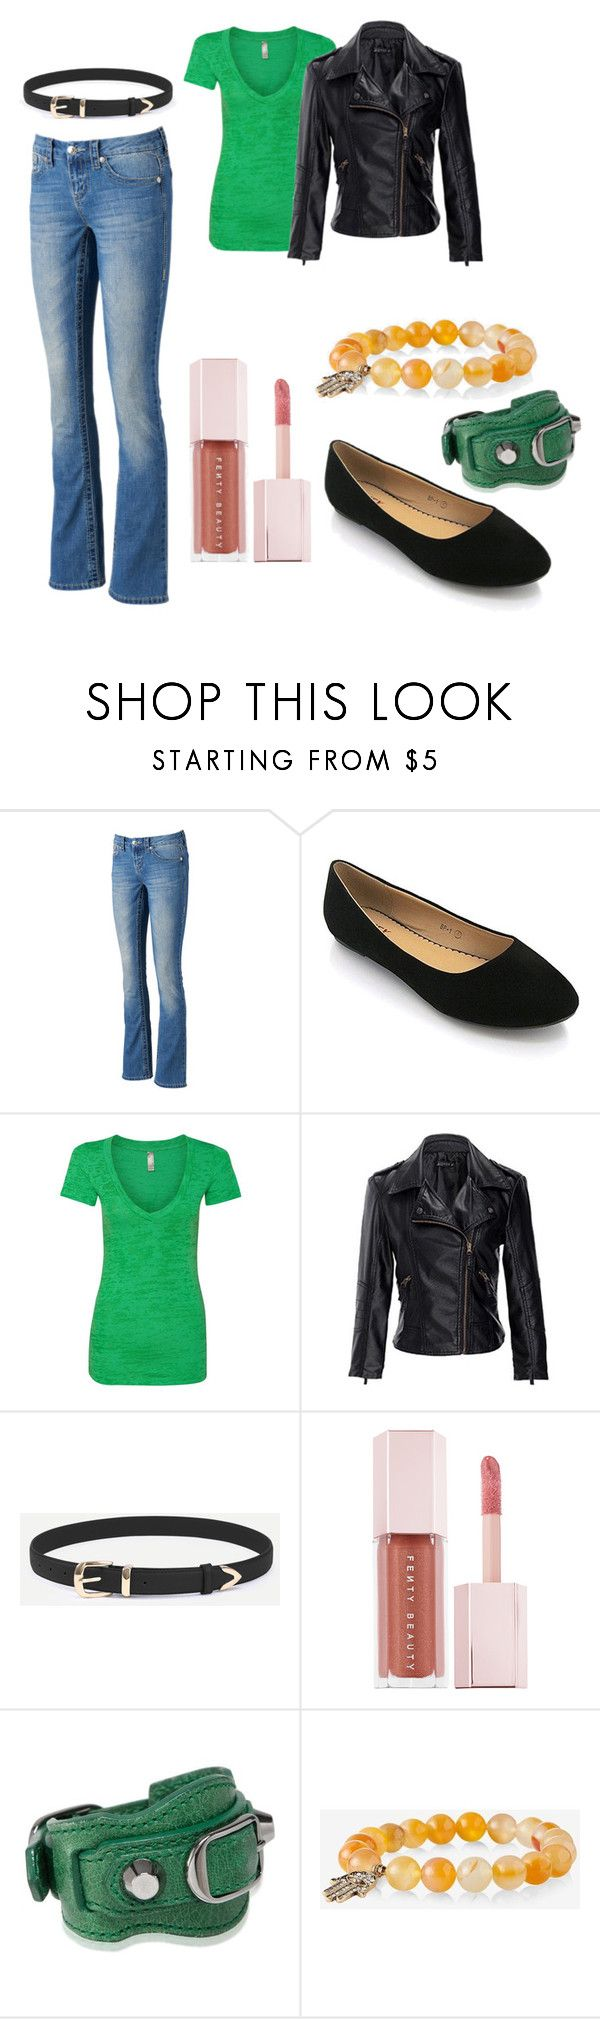 """""""Diamond Lil - Nolan"""" by dawn-currie-adams on Polyvore featuring Seven7 Jeans, Puma, Balenciaga and Express"""